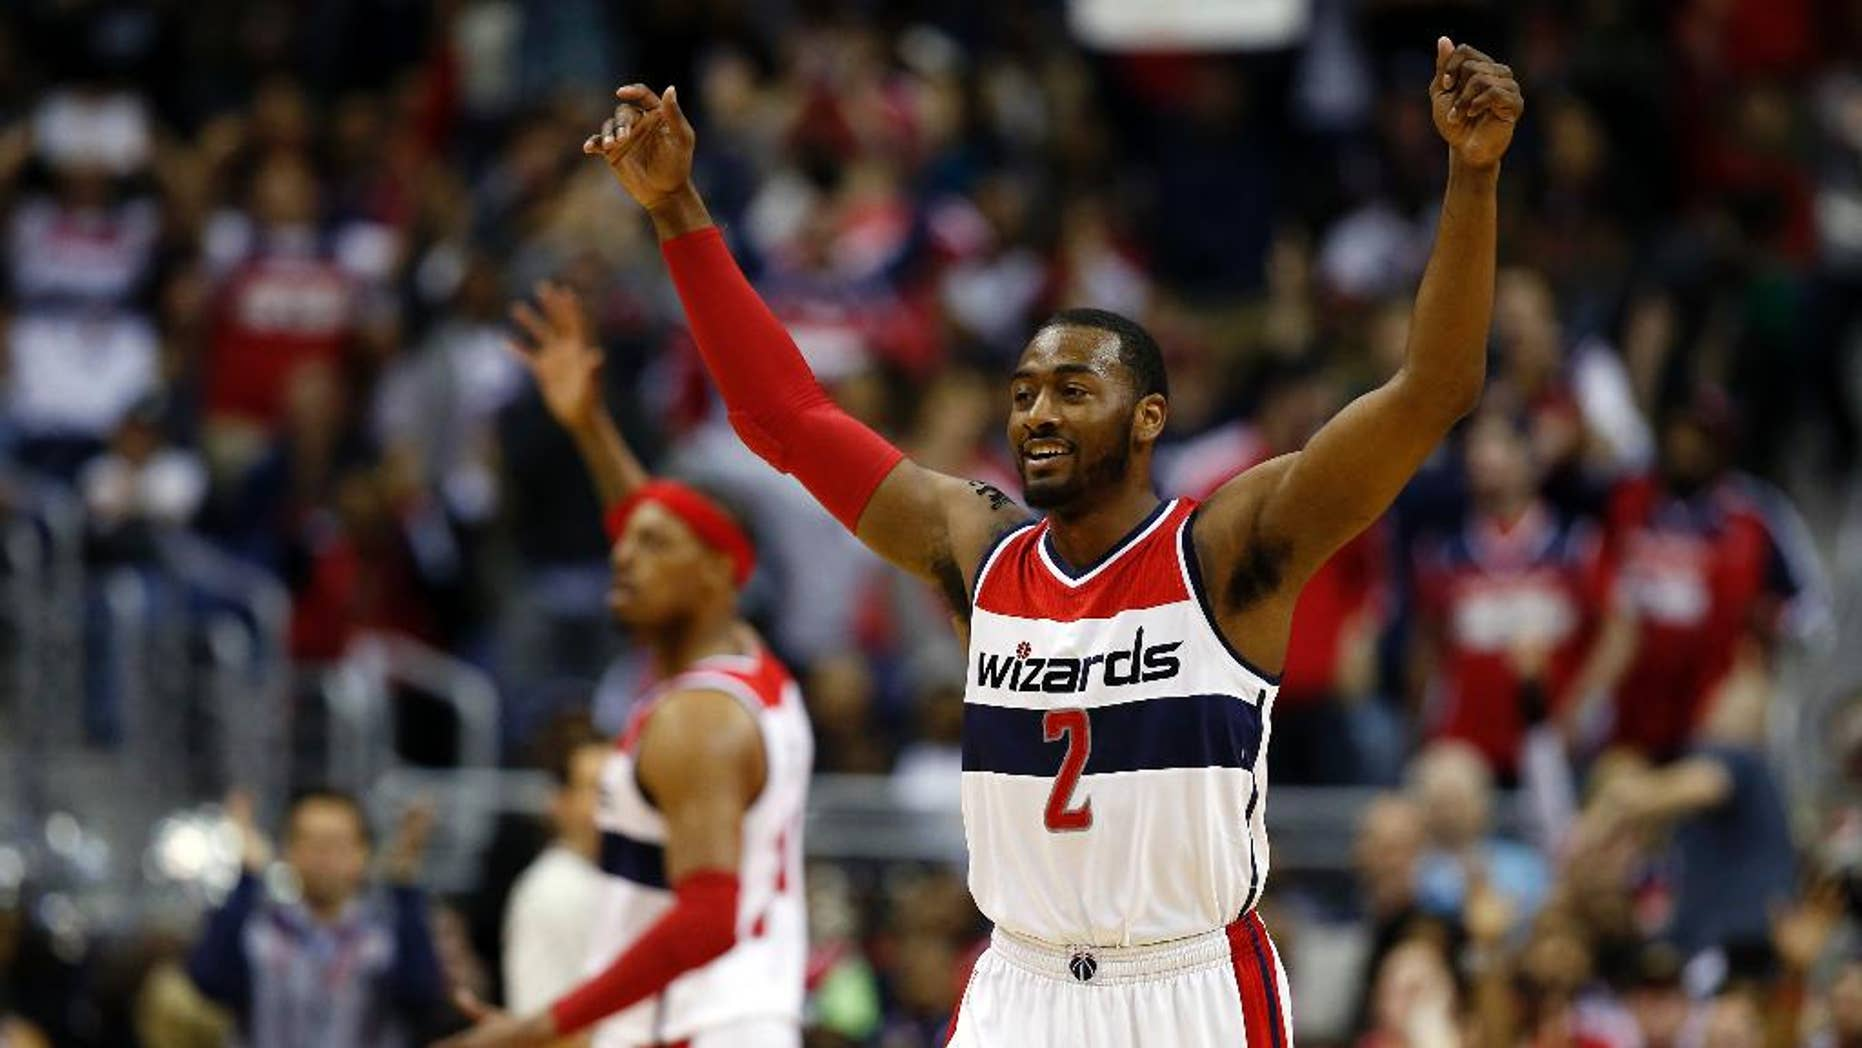 Washington Wizards guard John Wall (2) celebrates with forward Paul Pierce, behind, in the second half of Game 4 in the first round of the NBA basketball playoffs against the Toronto Raptors, Sunday, April 26, 2015, in Washington. The Wizards won 125-94 to complete the first sweep of a seven-game series in club history, and advancing them to the second-round. (AP Photo/Alex Brandon)